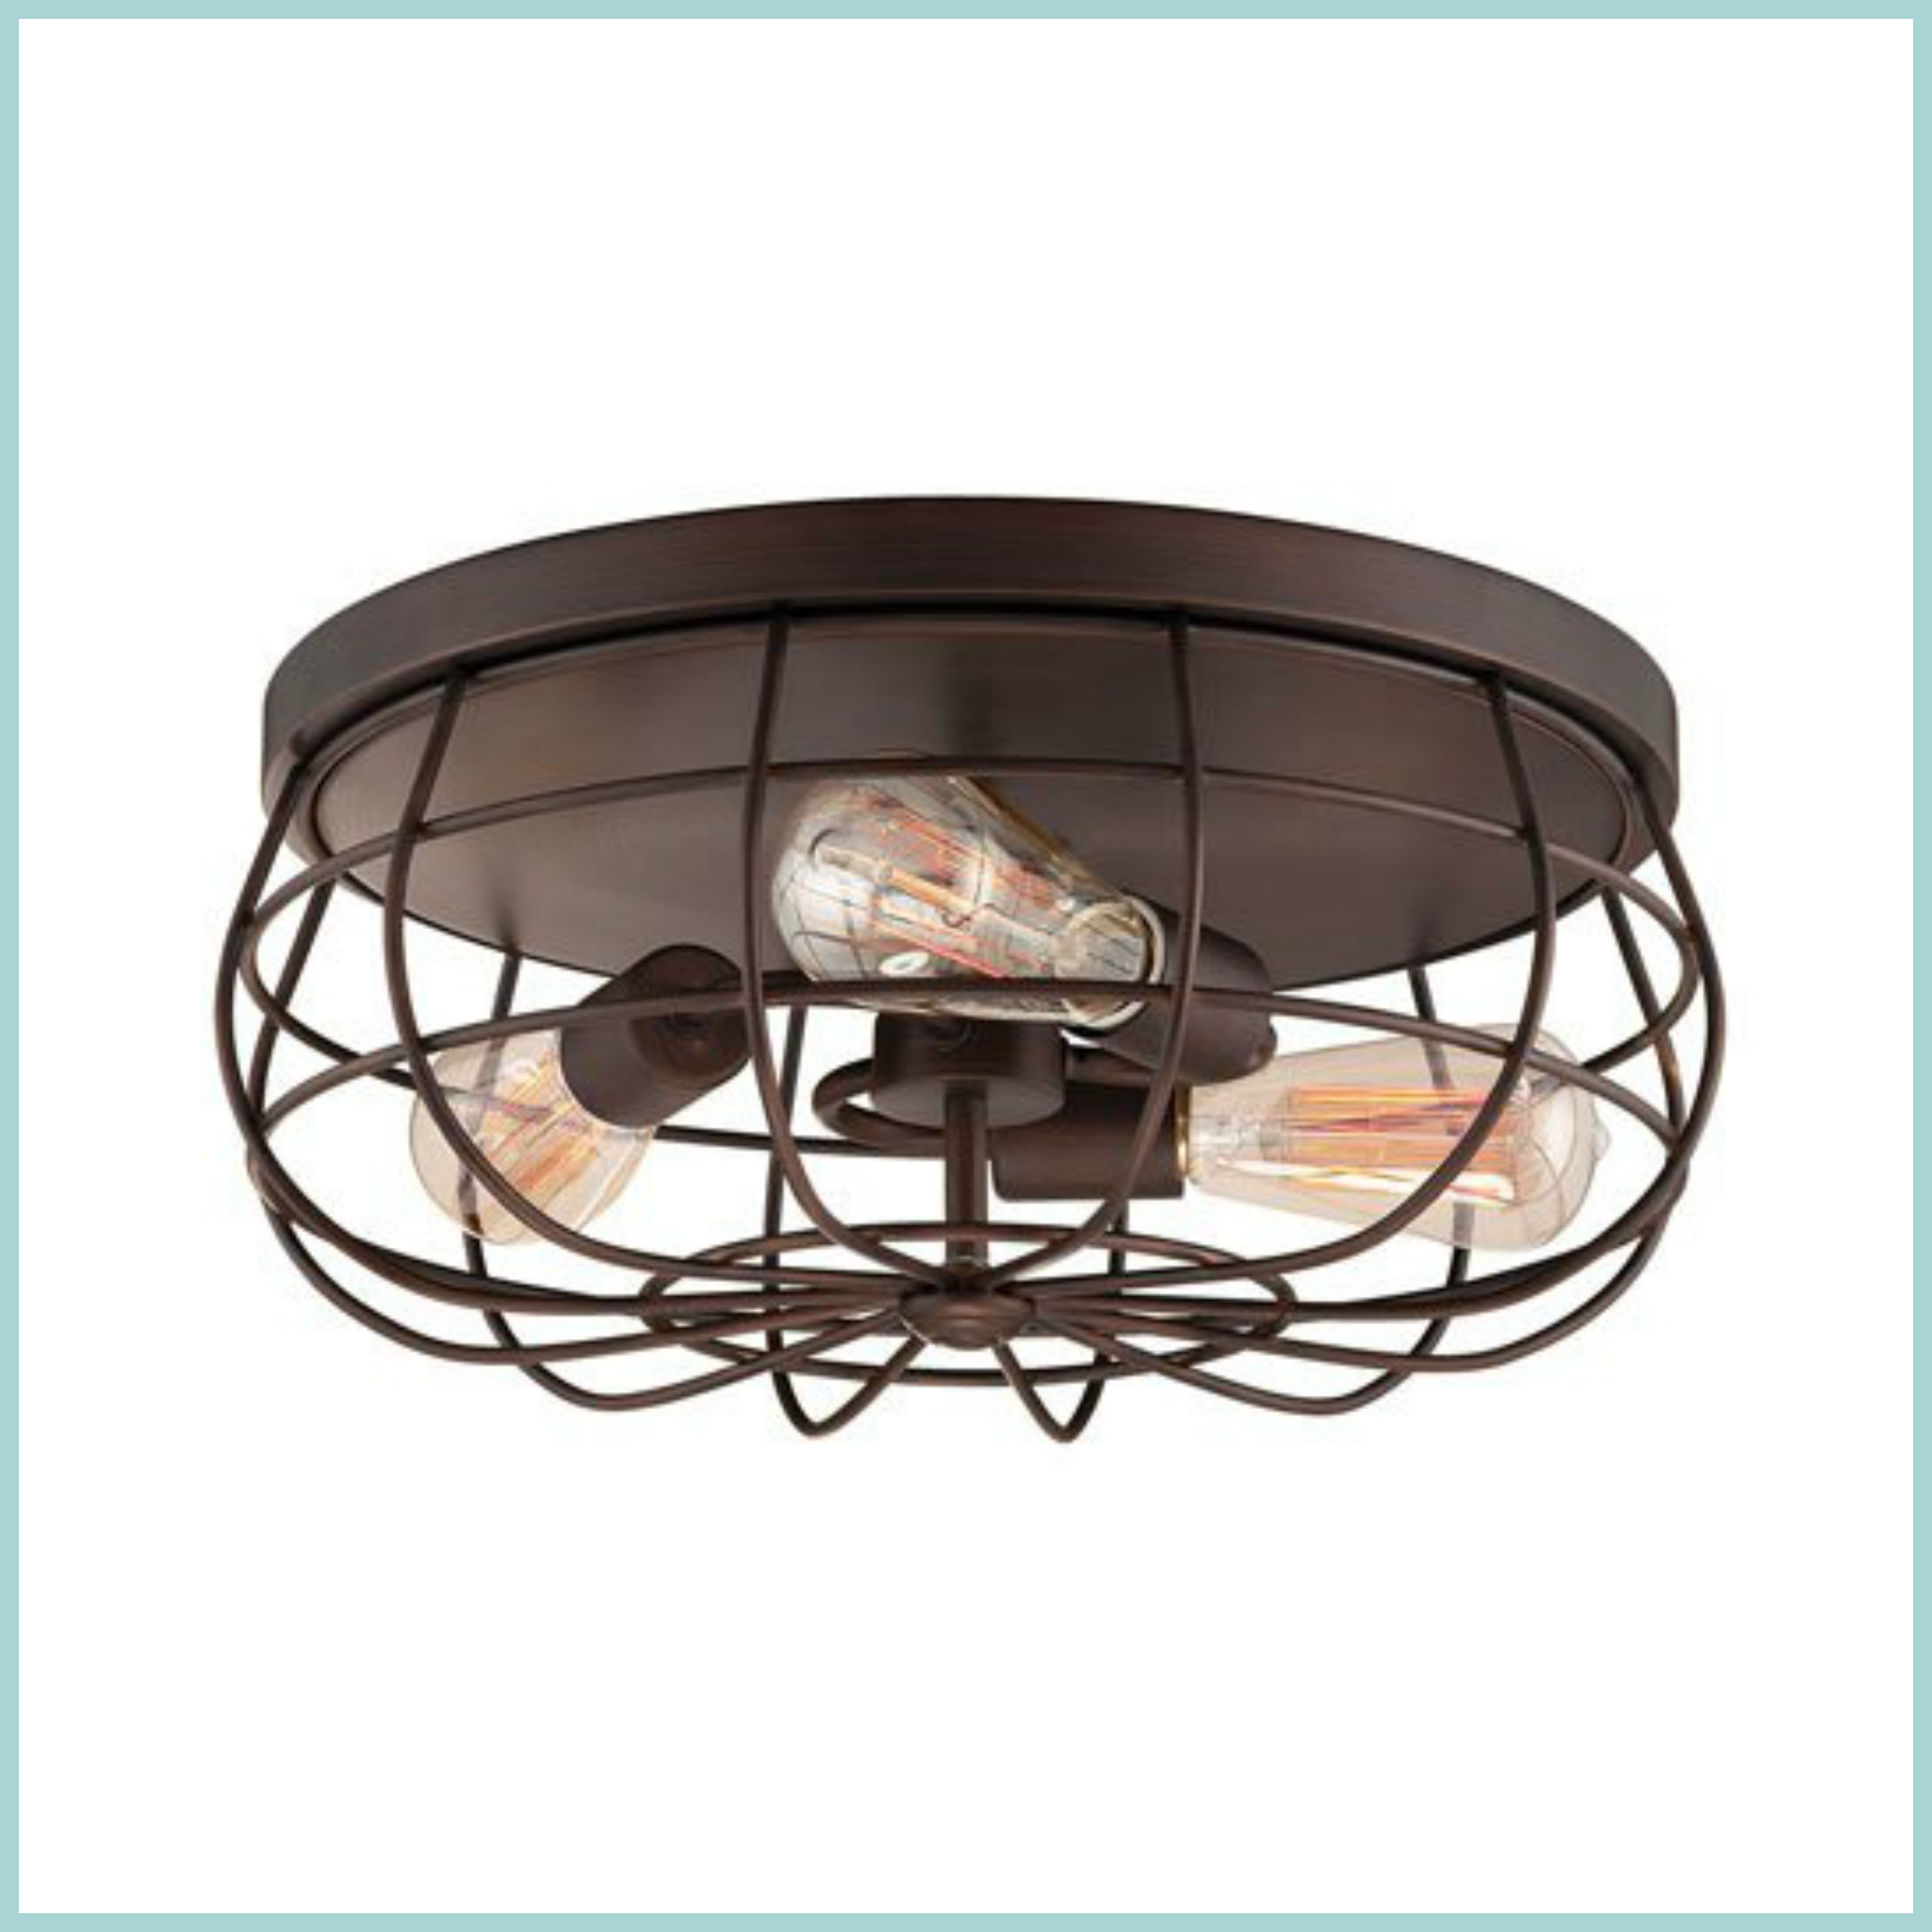 These gorgeous high style ceiling lights will dress up a low ceiling now you know you dont have to have high ceilings to have high style lights are you convinced i know i am and i gotta tell you guys ill be swapping aloadofball Gallery